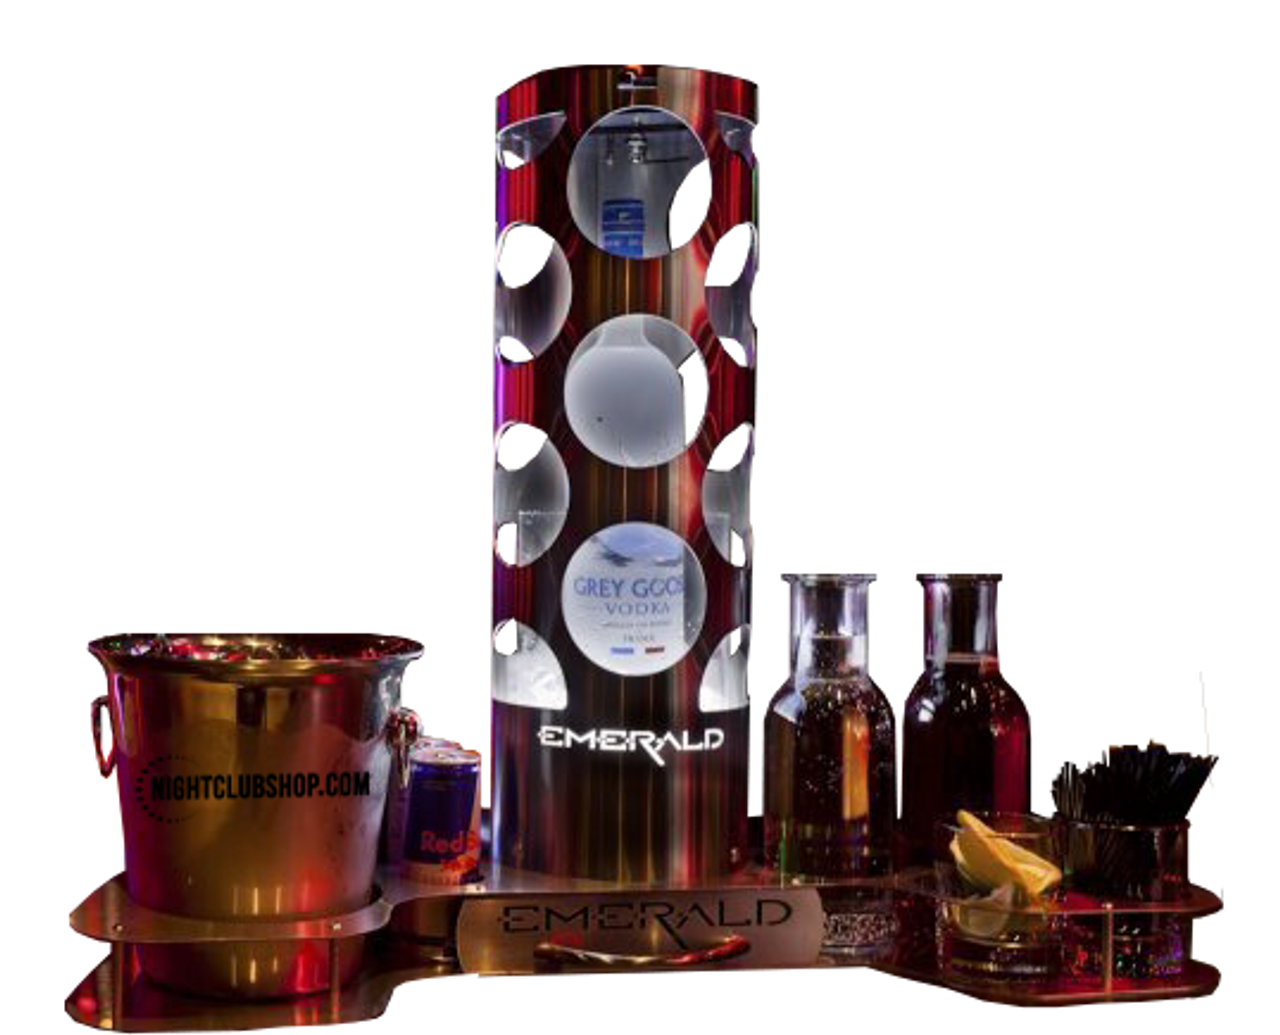 Bottle service delivery, Tray, Liquor, Delivery, High-End, VIP, carafes, Ice Bucket, LED